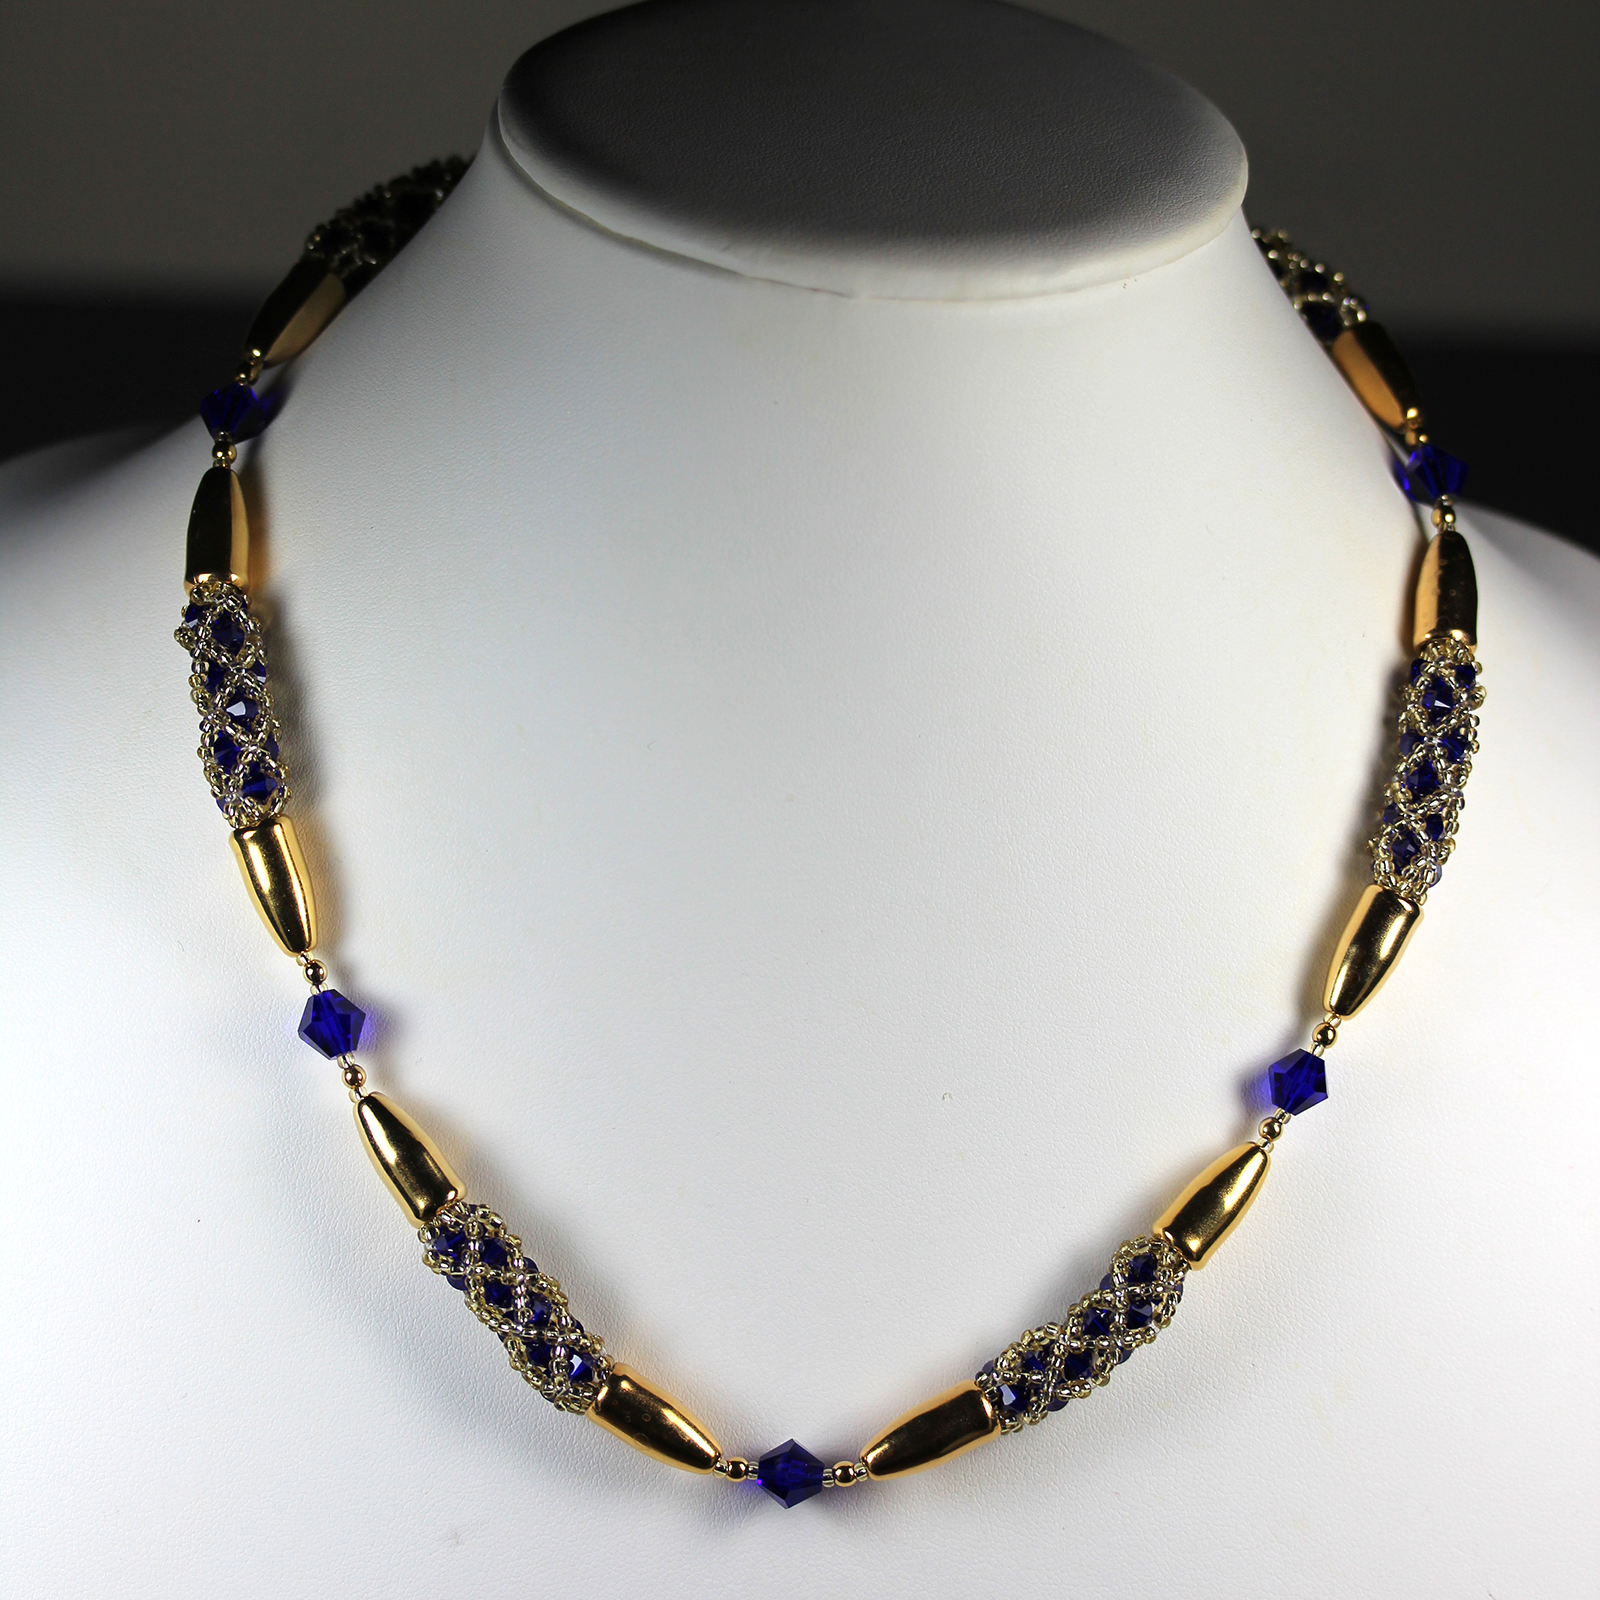 Designer Jewelry - Enclased Crystals in Cobalt Blue